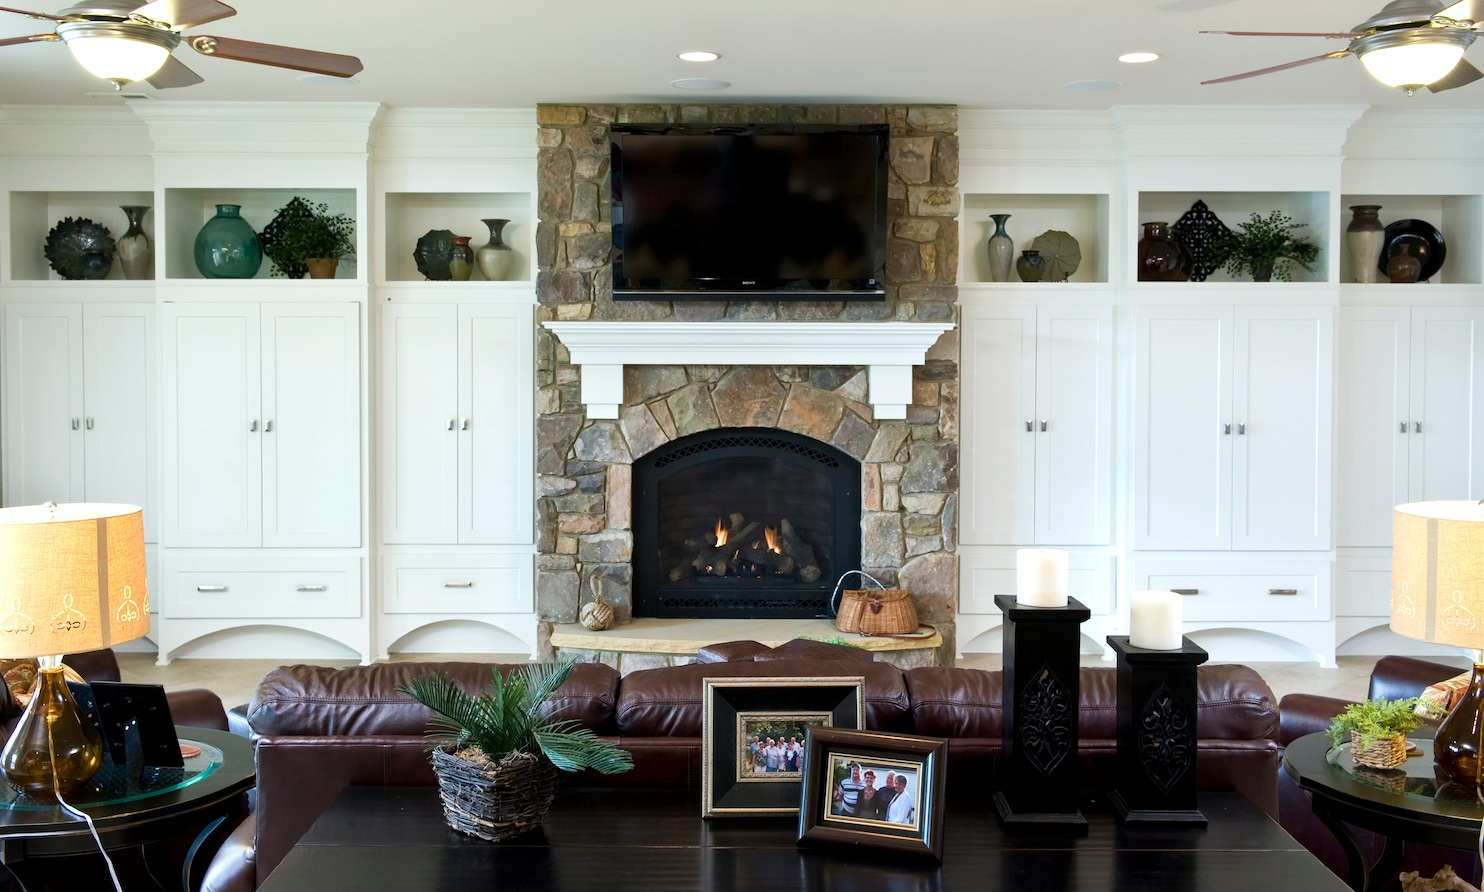 Light A Gas Fireplace Pilot Light Switch For A Gas Fireplace The Washington Post